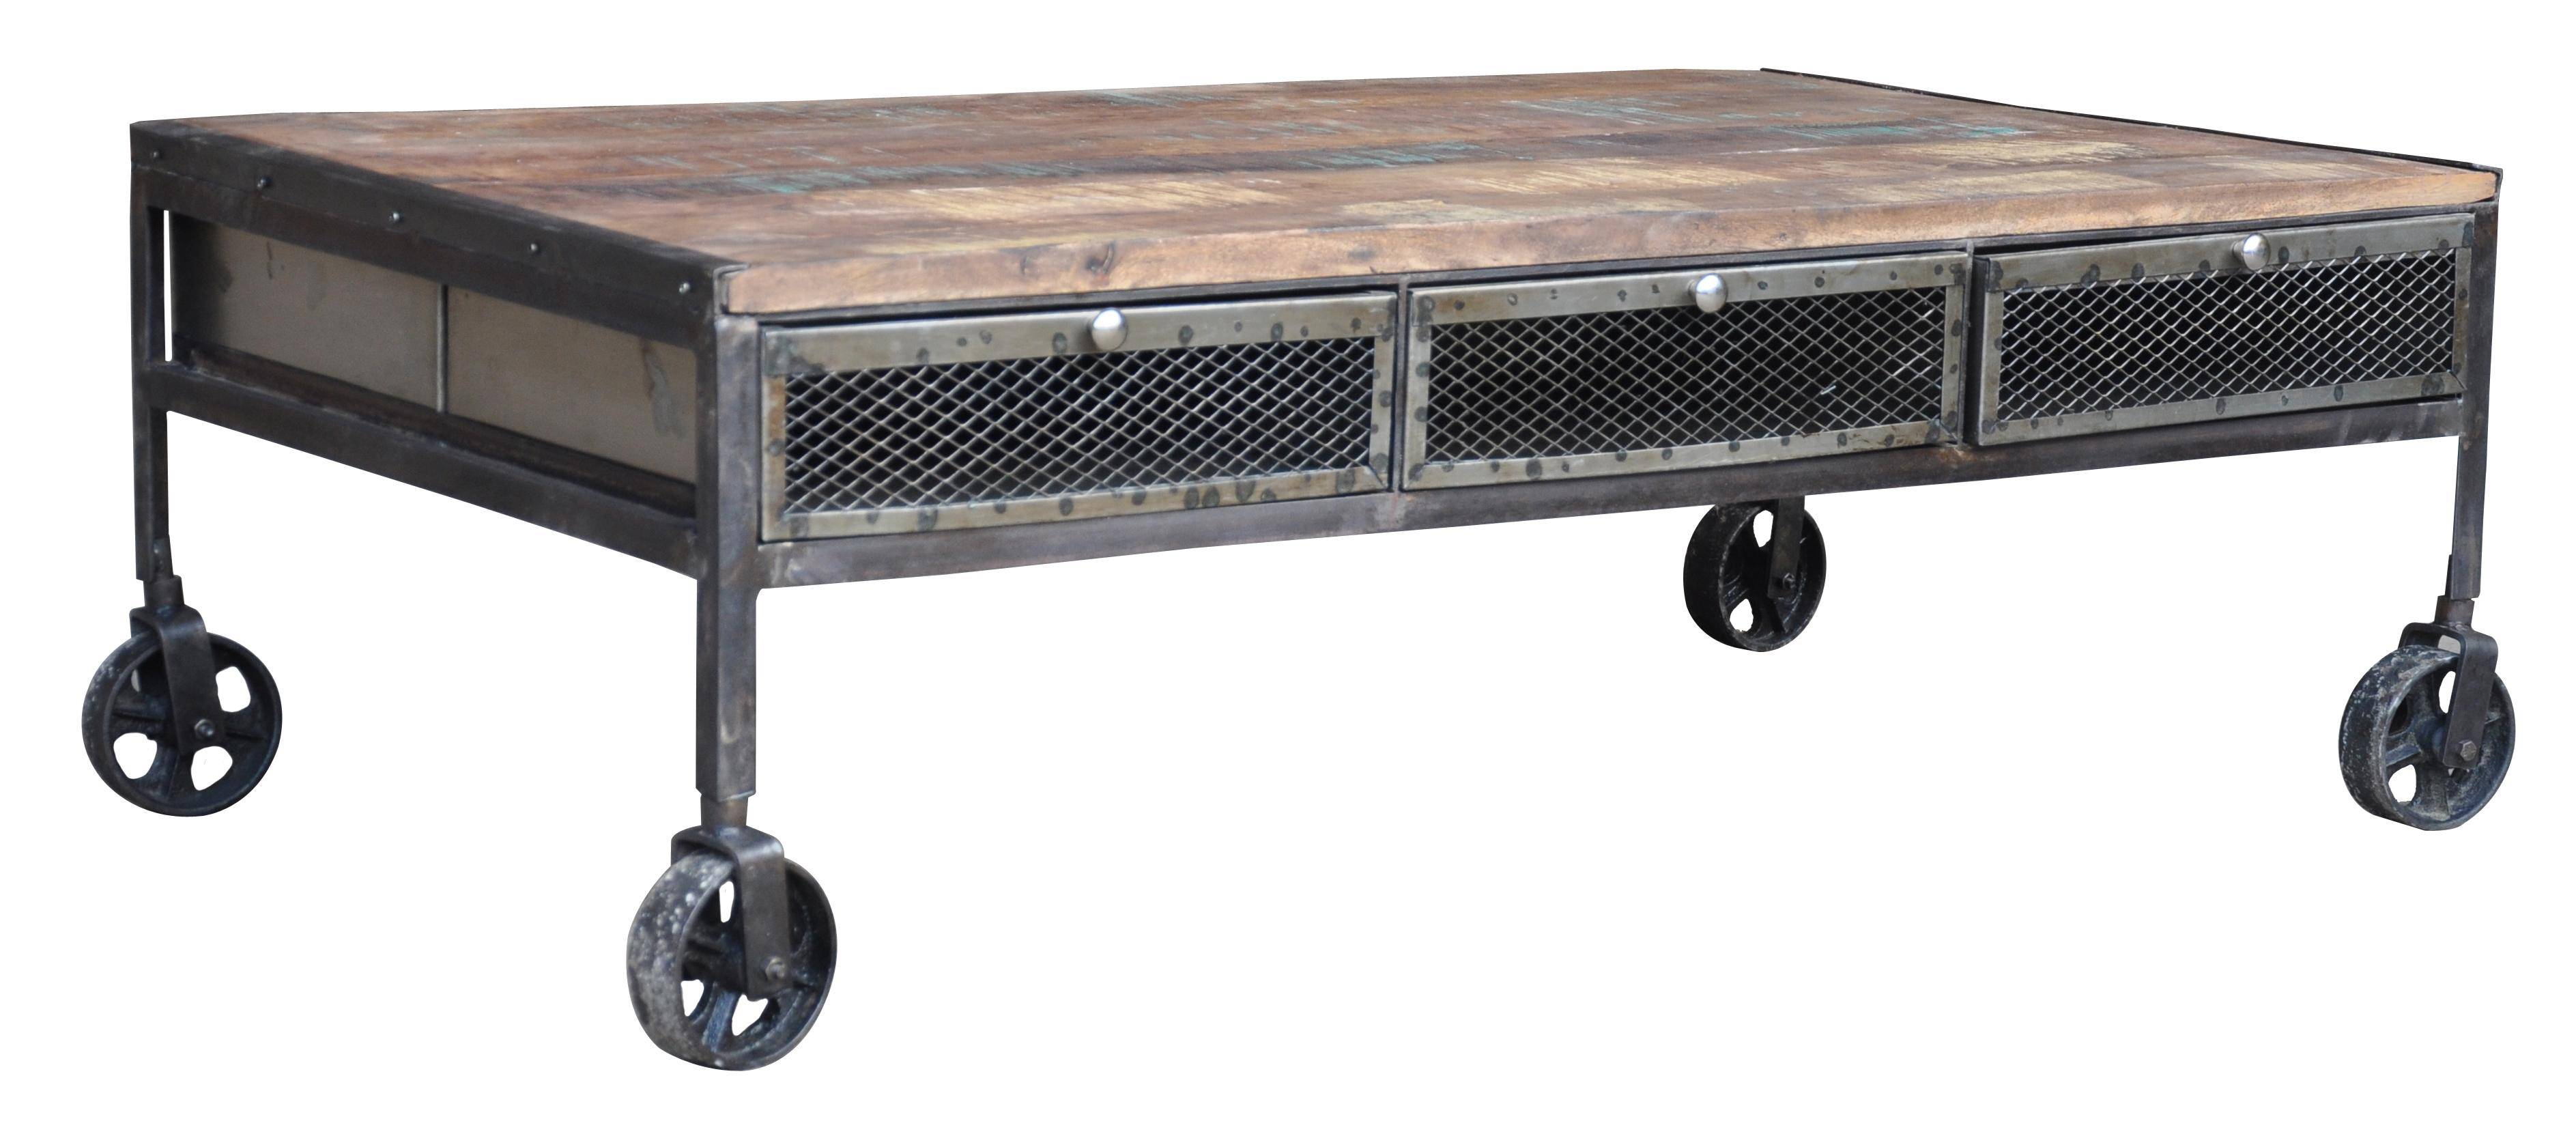 Jaipur Furniture Guru Industrial Wheeled Coffee Table FMG